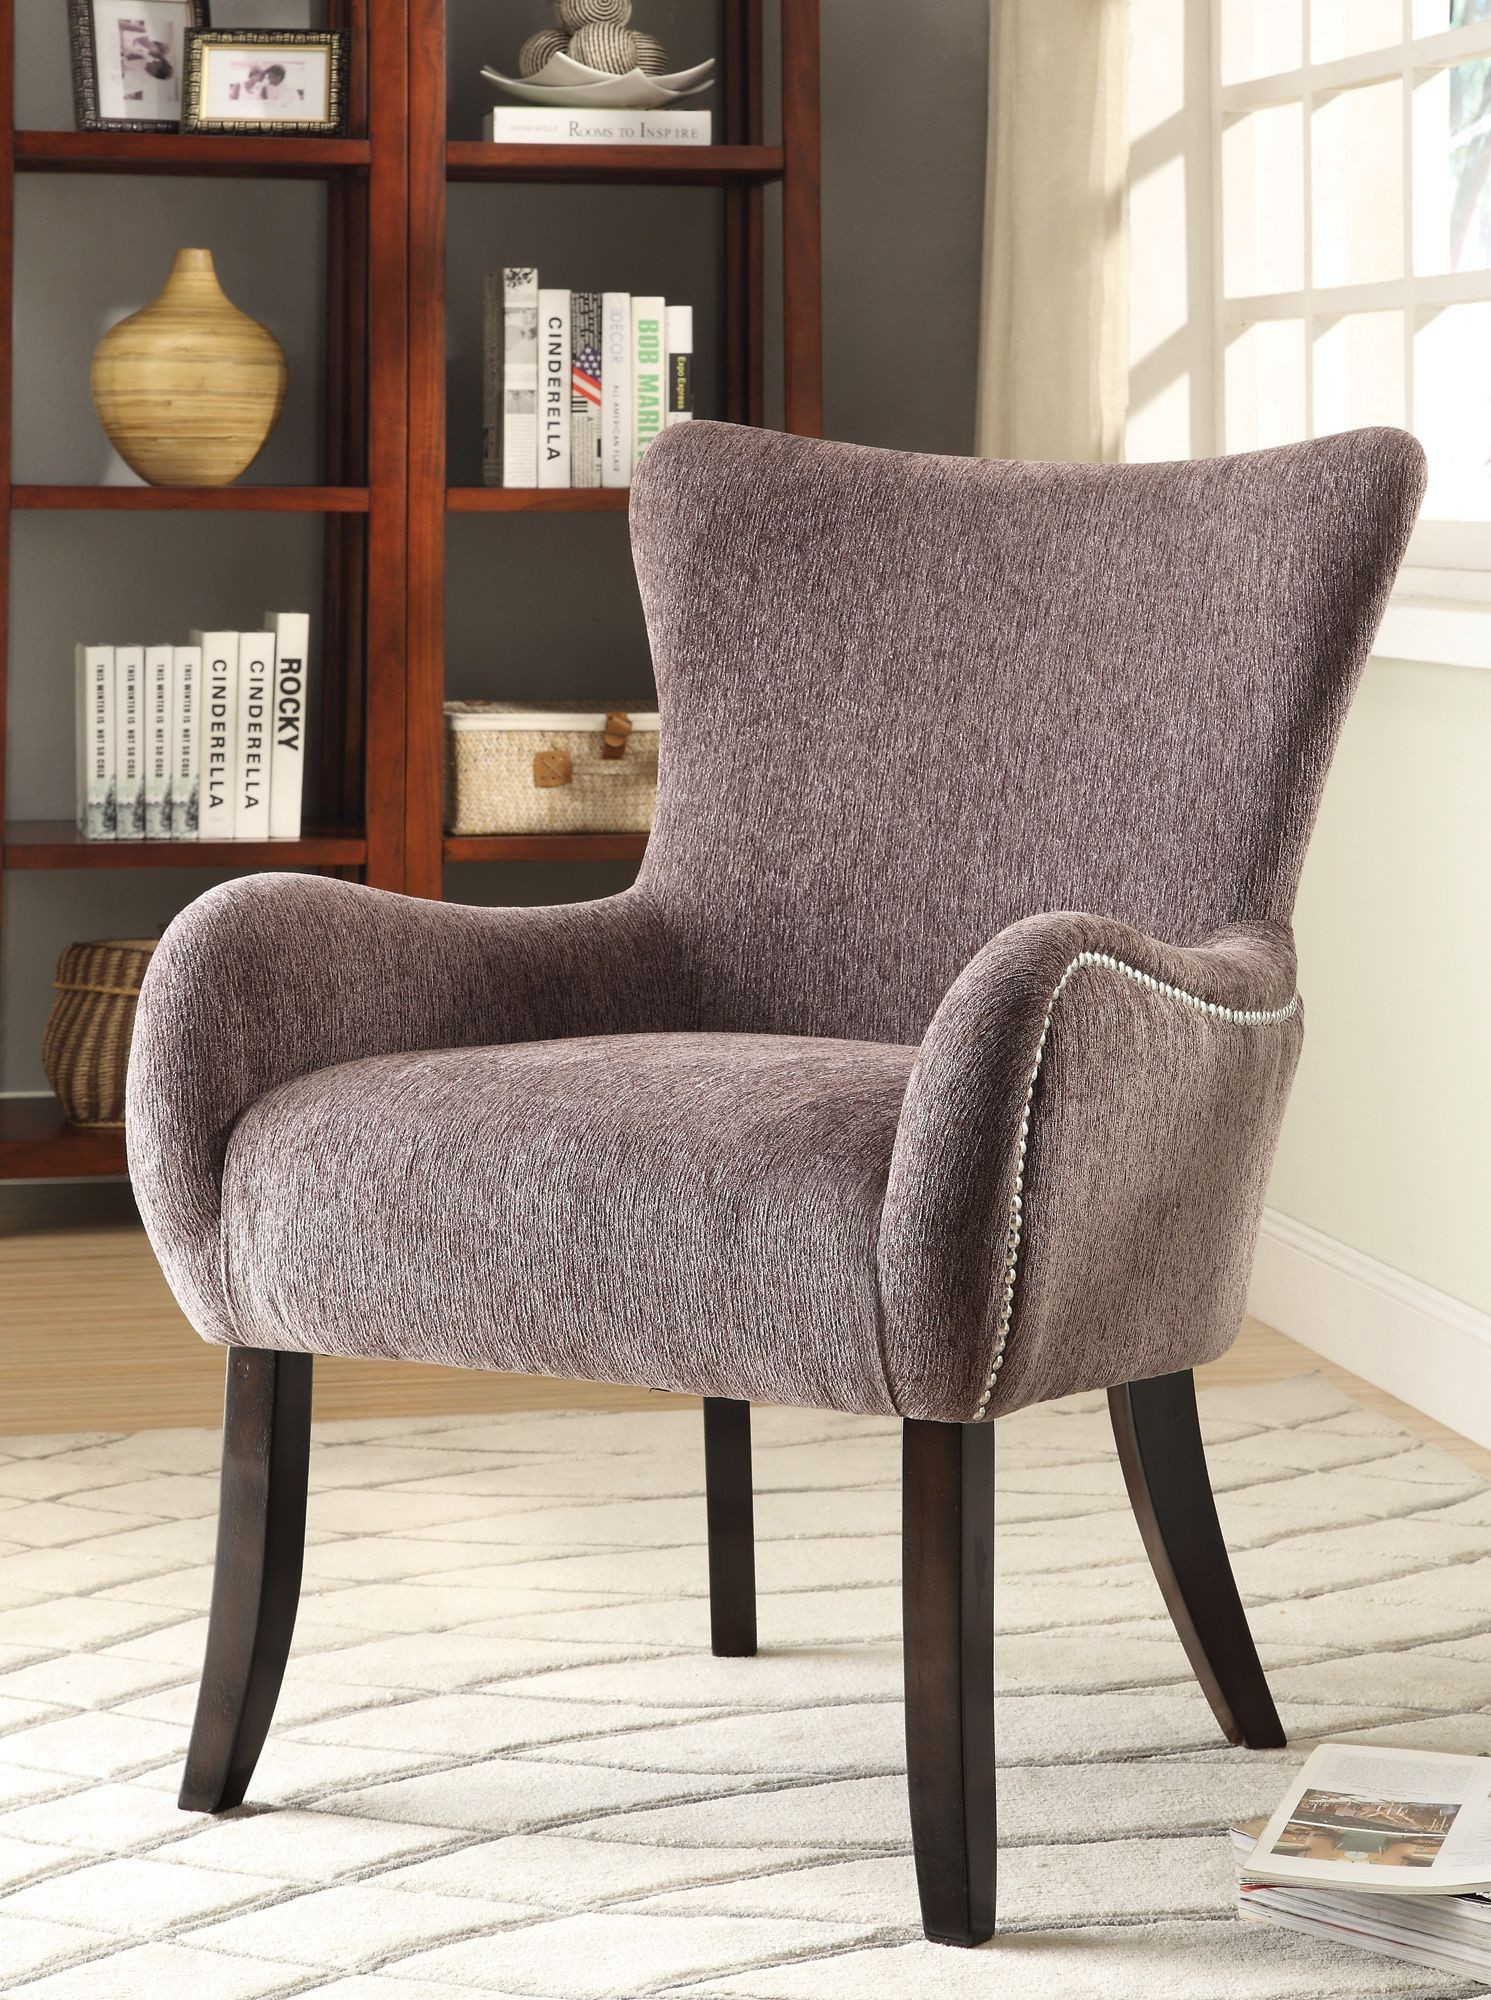 Grey Upholstered Chair 902504 Upholstered Grey Accent Chair From Coaster 902504